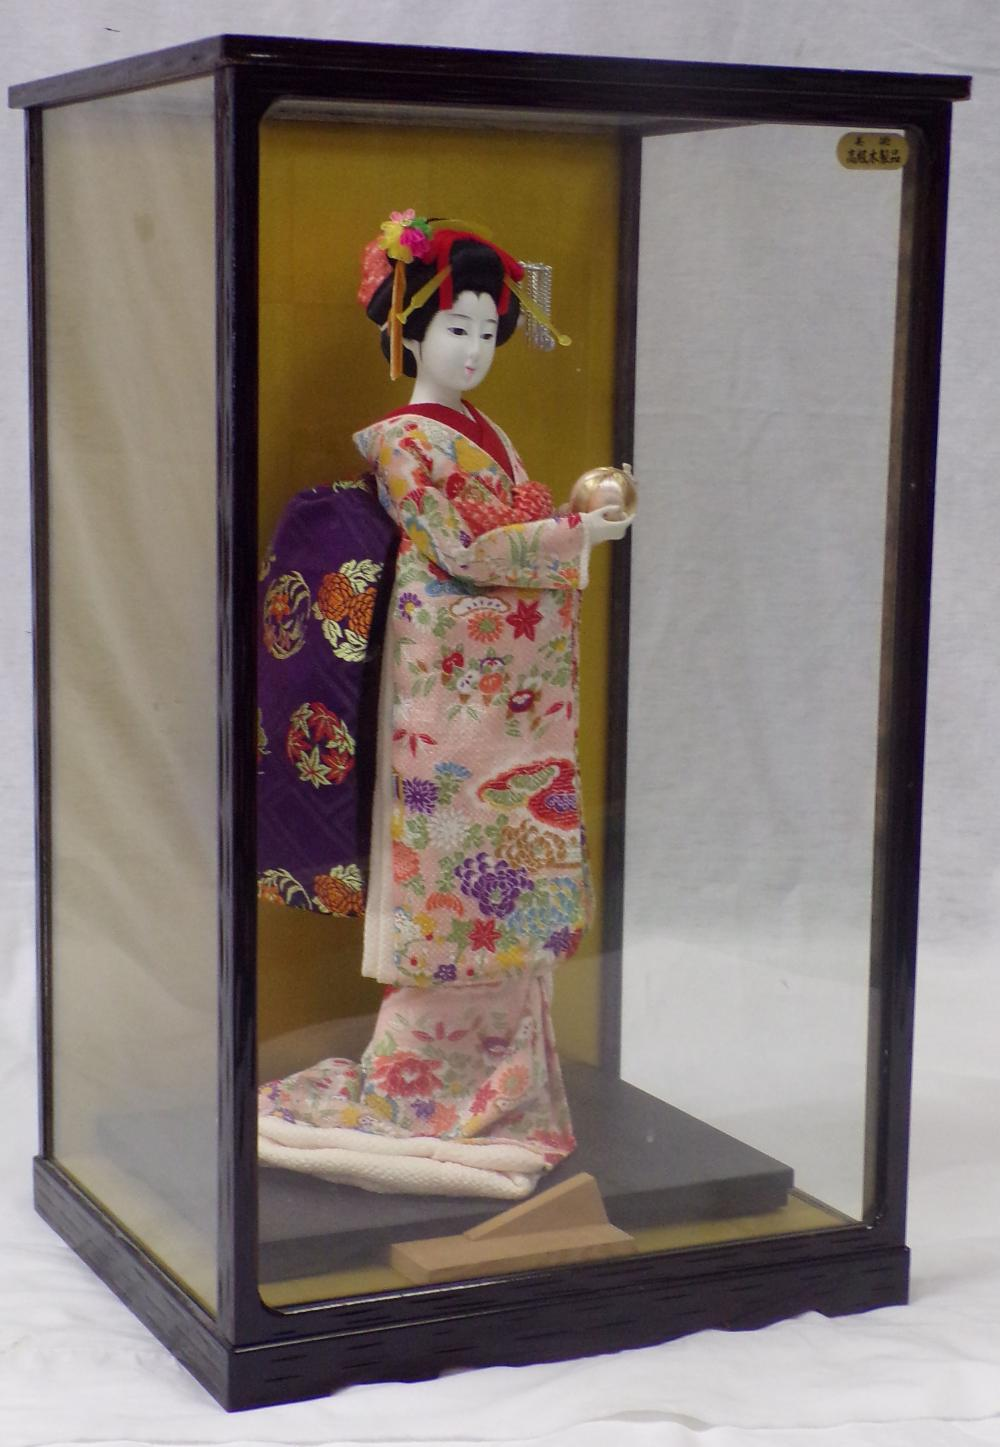 Japanese Geisha Girl figure together with a wood & glass display case, 16'' T; case 21'' T x 13''W x 11 ½''D.